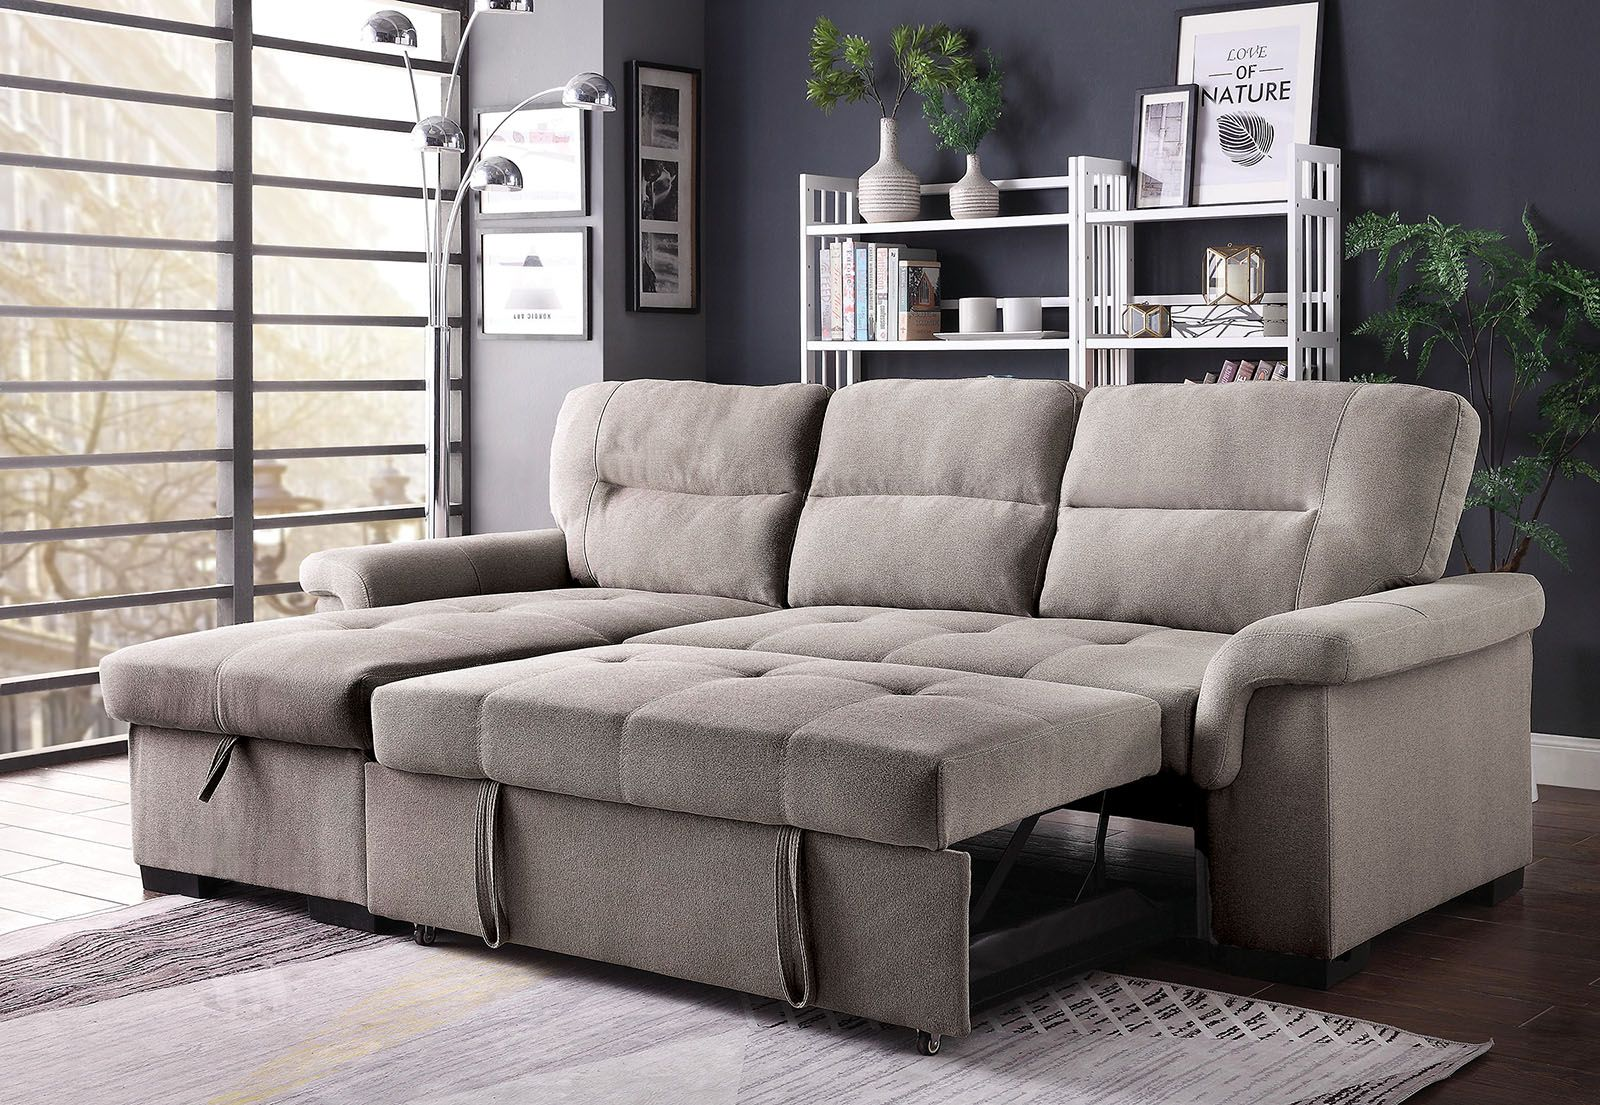 Anabel Contemporary Sectional Sofa w/ Sleeper in Light ...